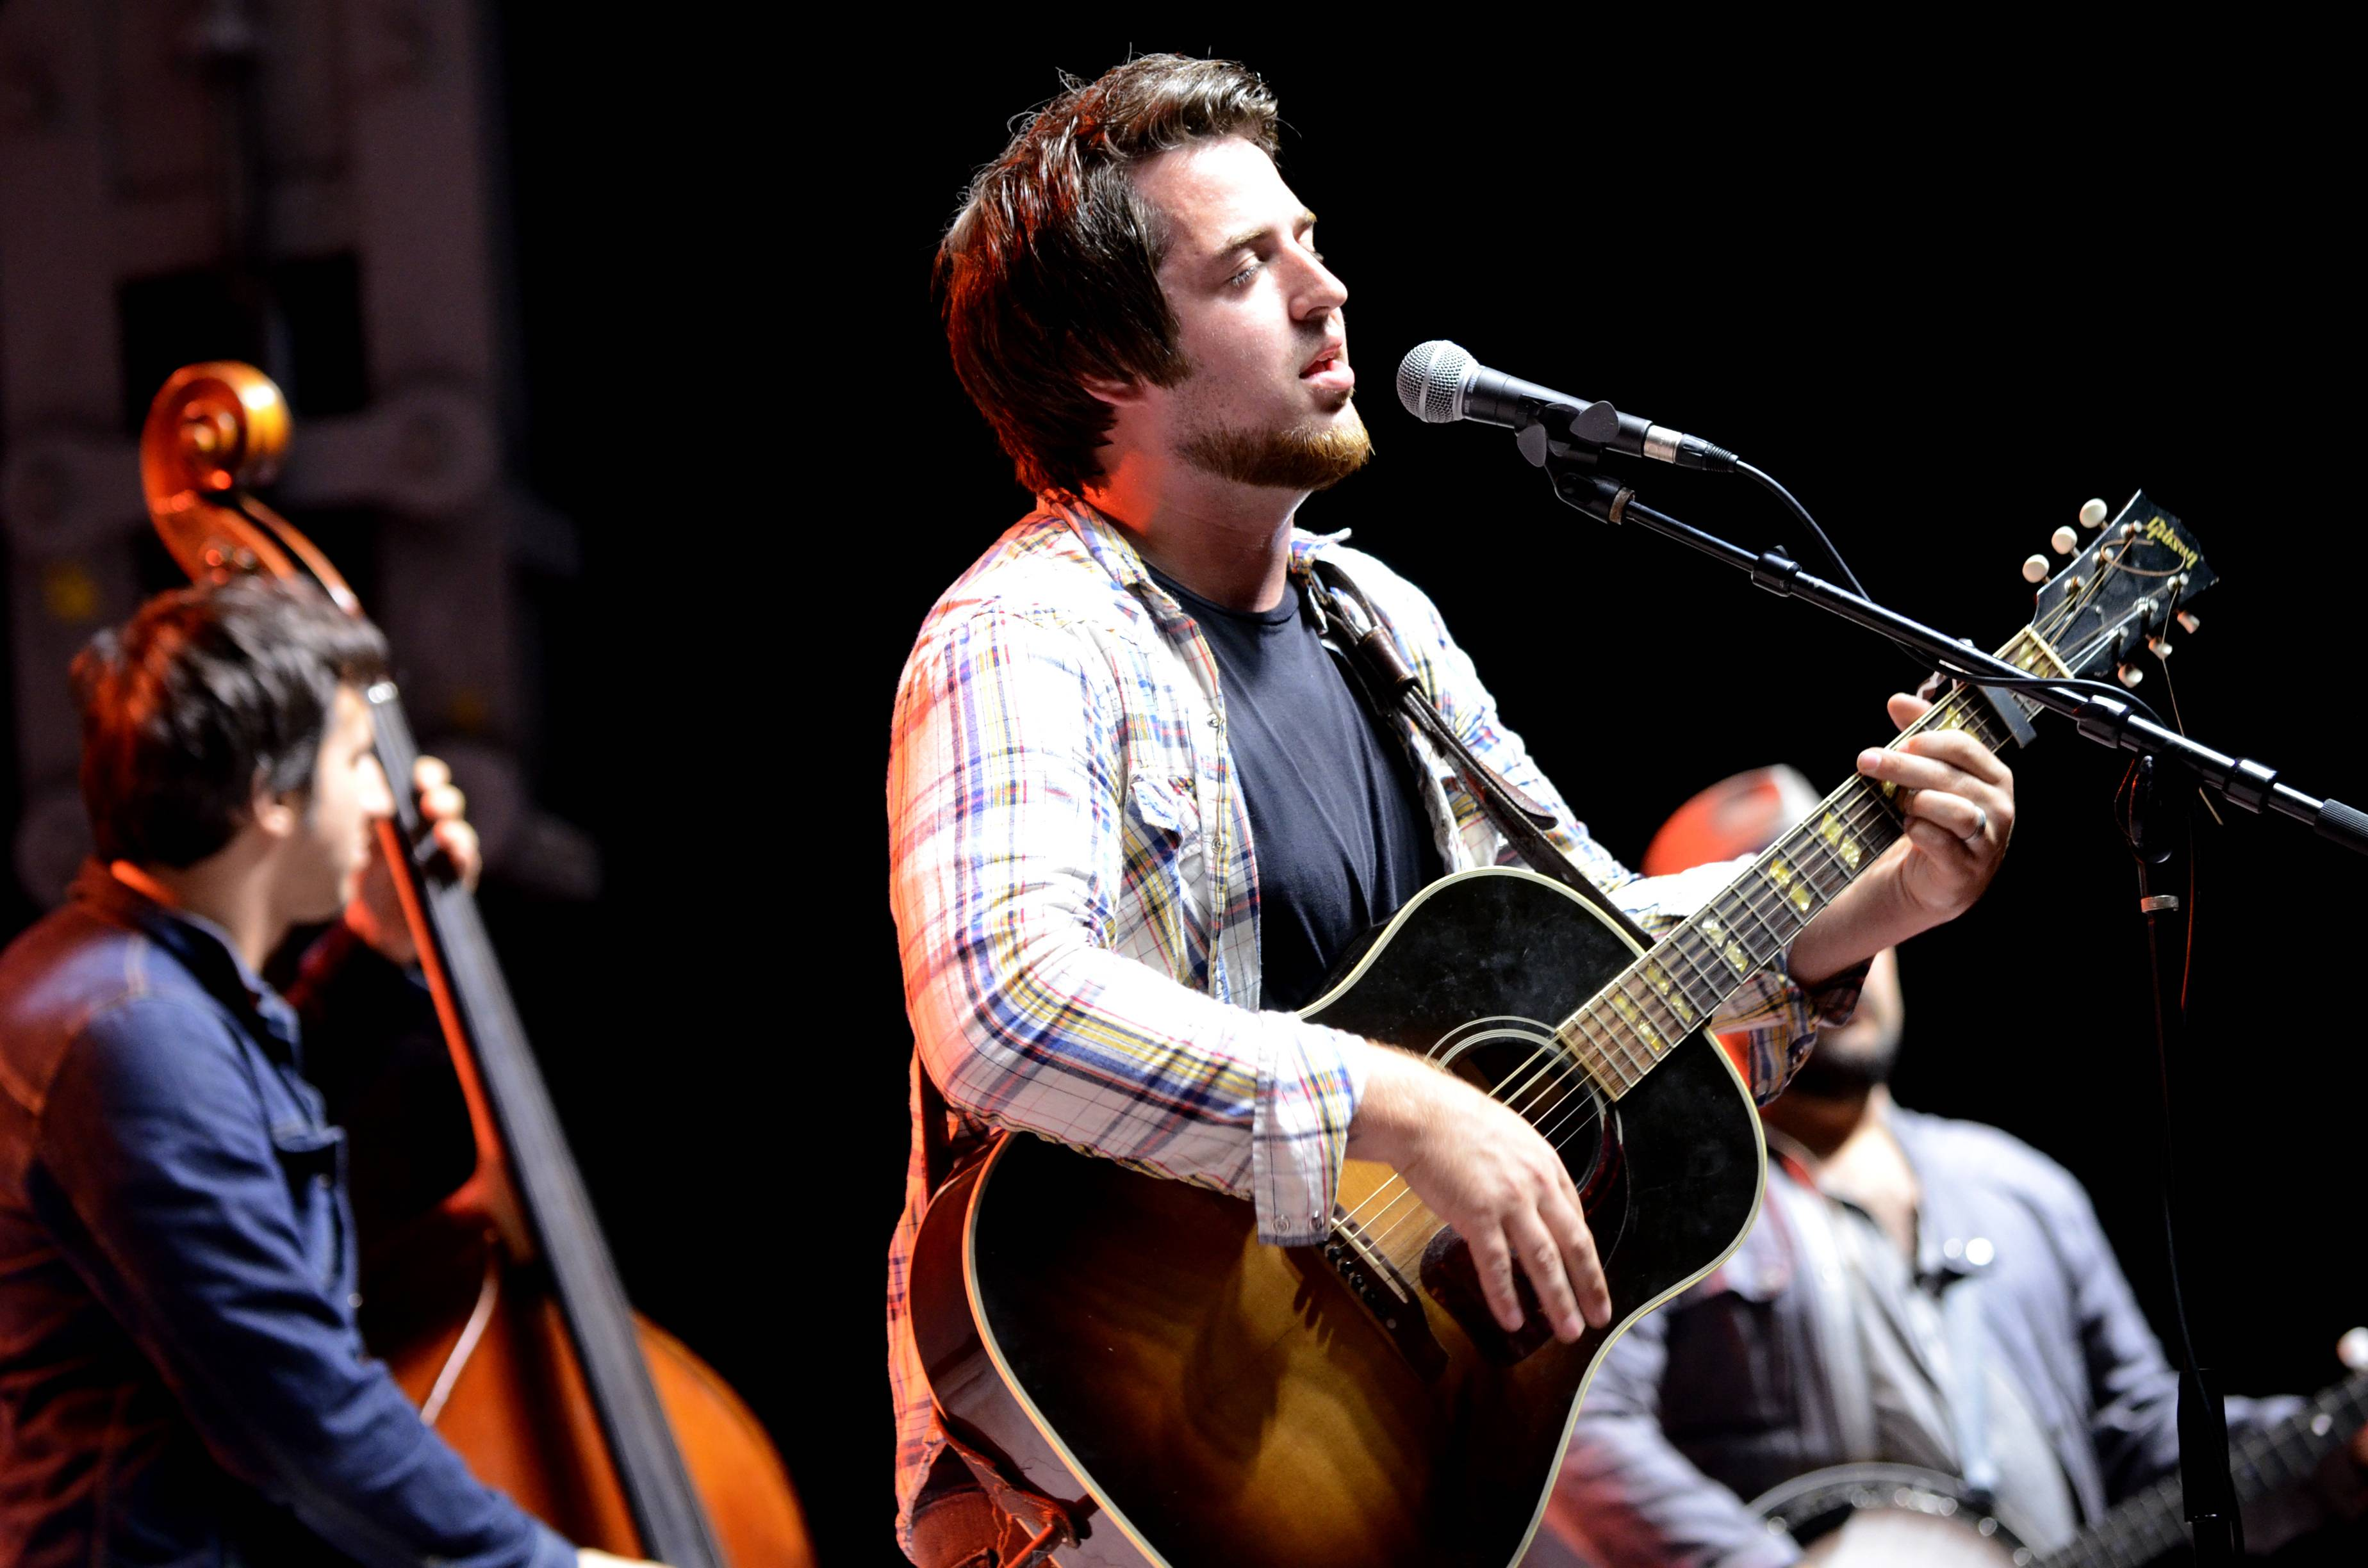 American Idol winner and Mount Prospect native Lee DeWyze performs at the Rockin' Ribfest in Lake in the Hills on Friday. Festival hours are Saturday from 11:30 a.m. to 11 p.m. and Sunday from 11:30 a.m. to 7 p.m. Visit lithribfest.com